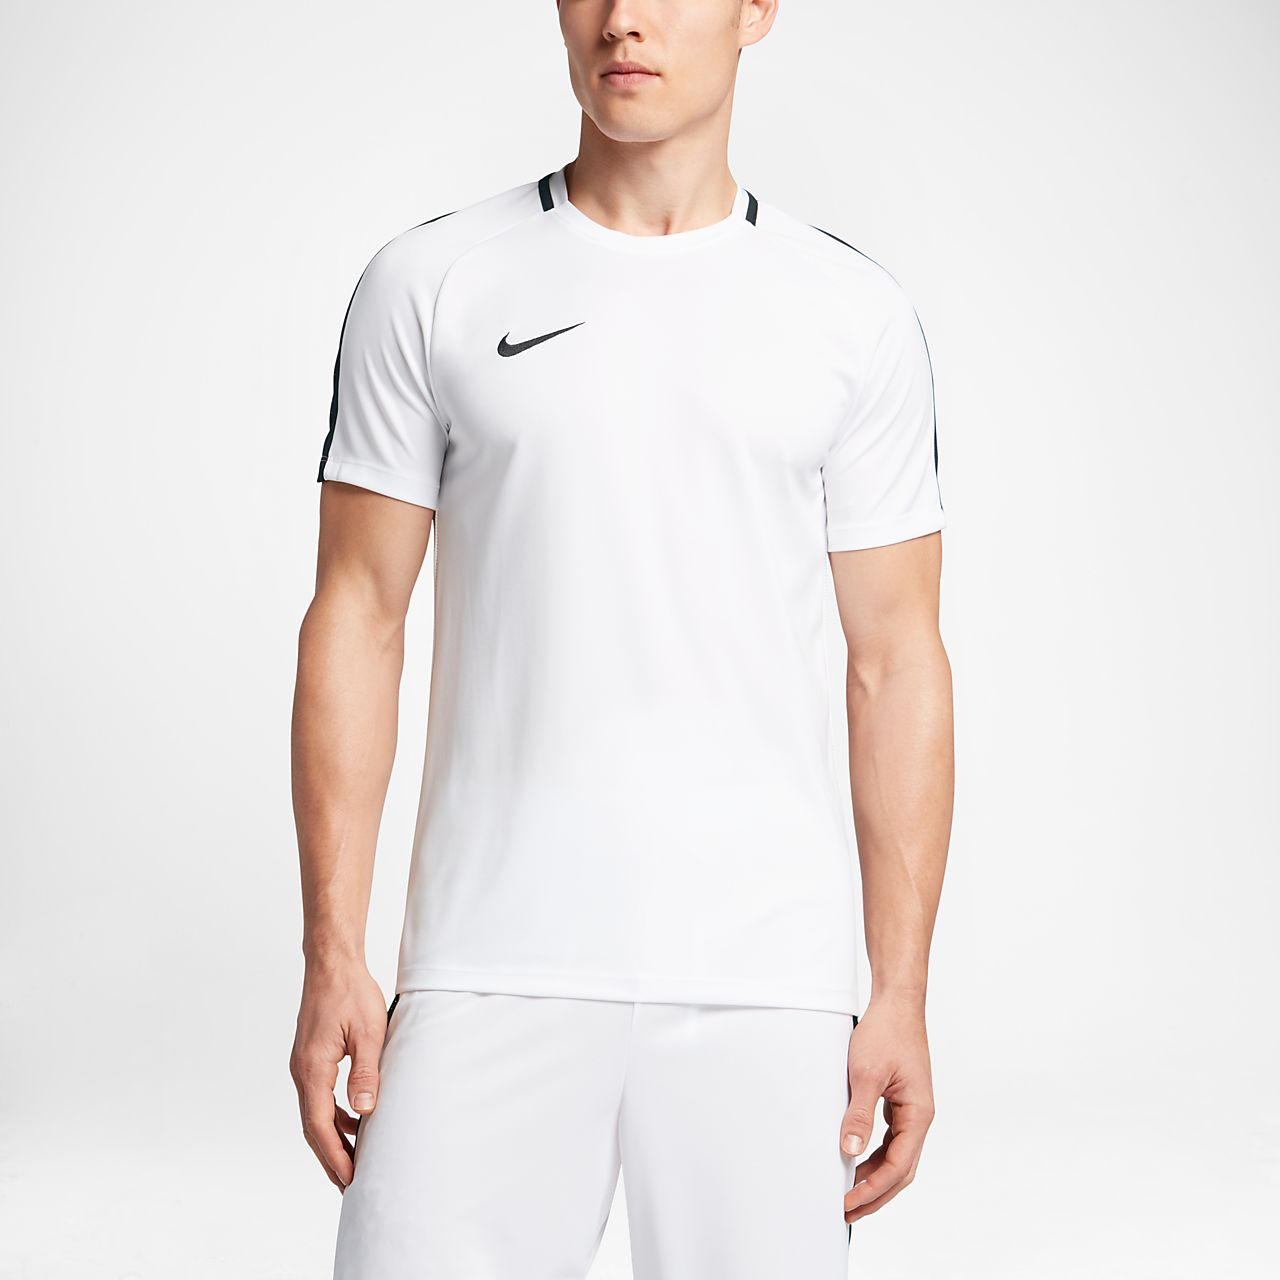 da739e7592856 Nike Dri-FIT Academy Men s Soccer Top. Nike.com